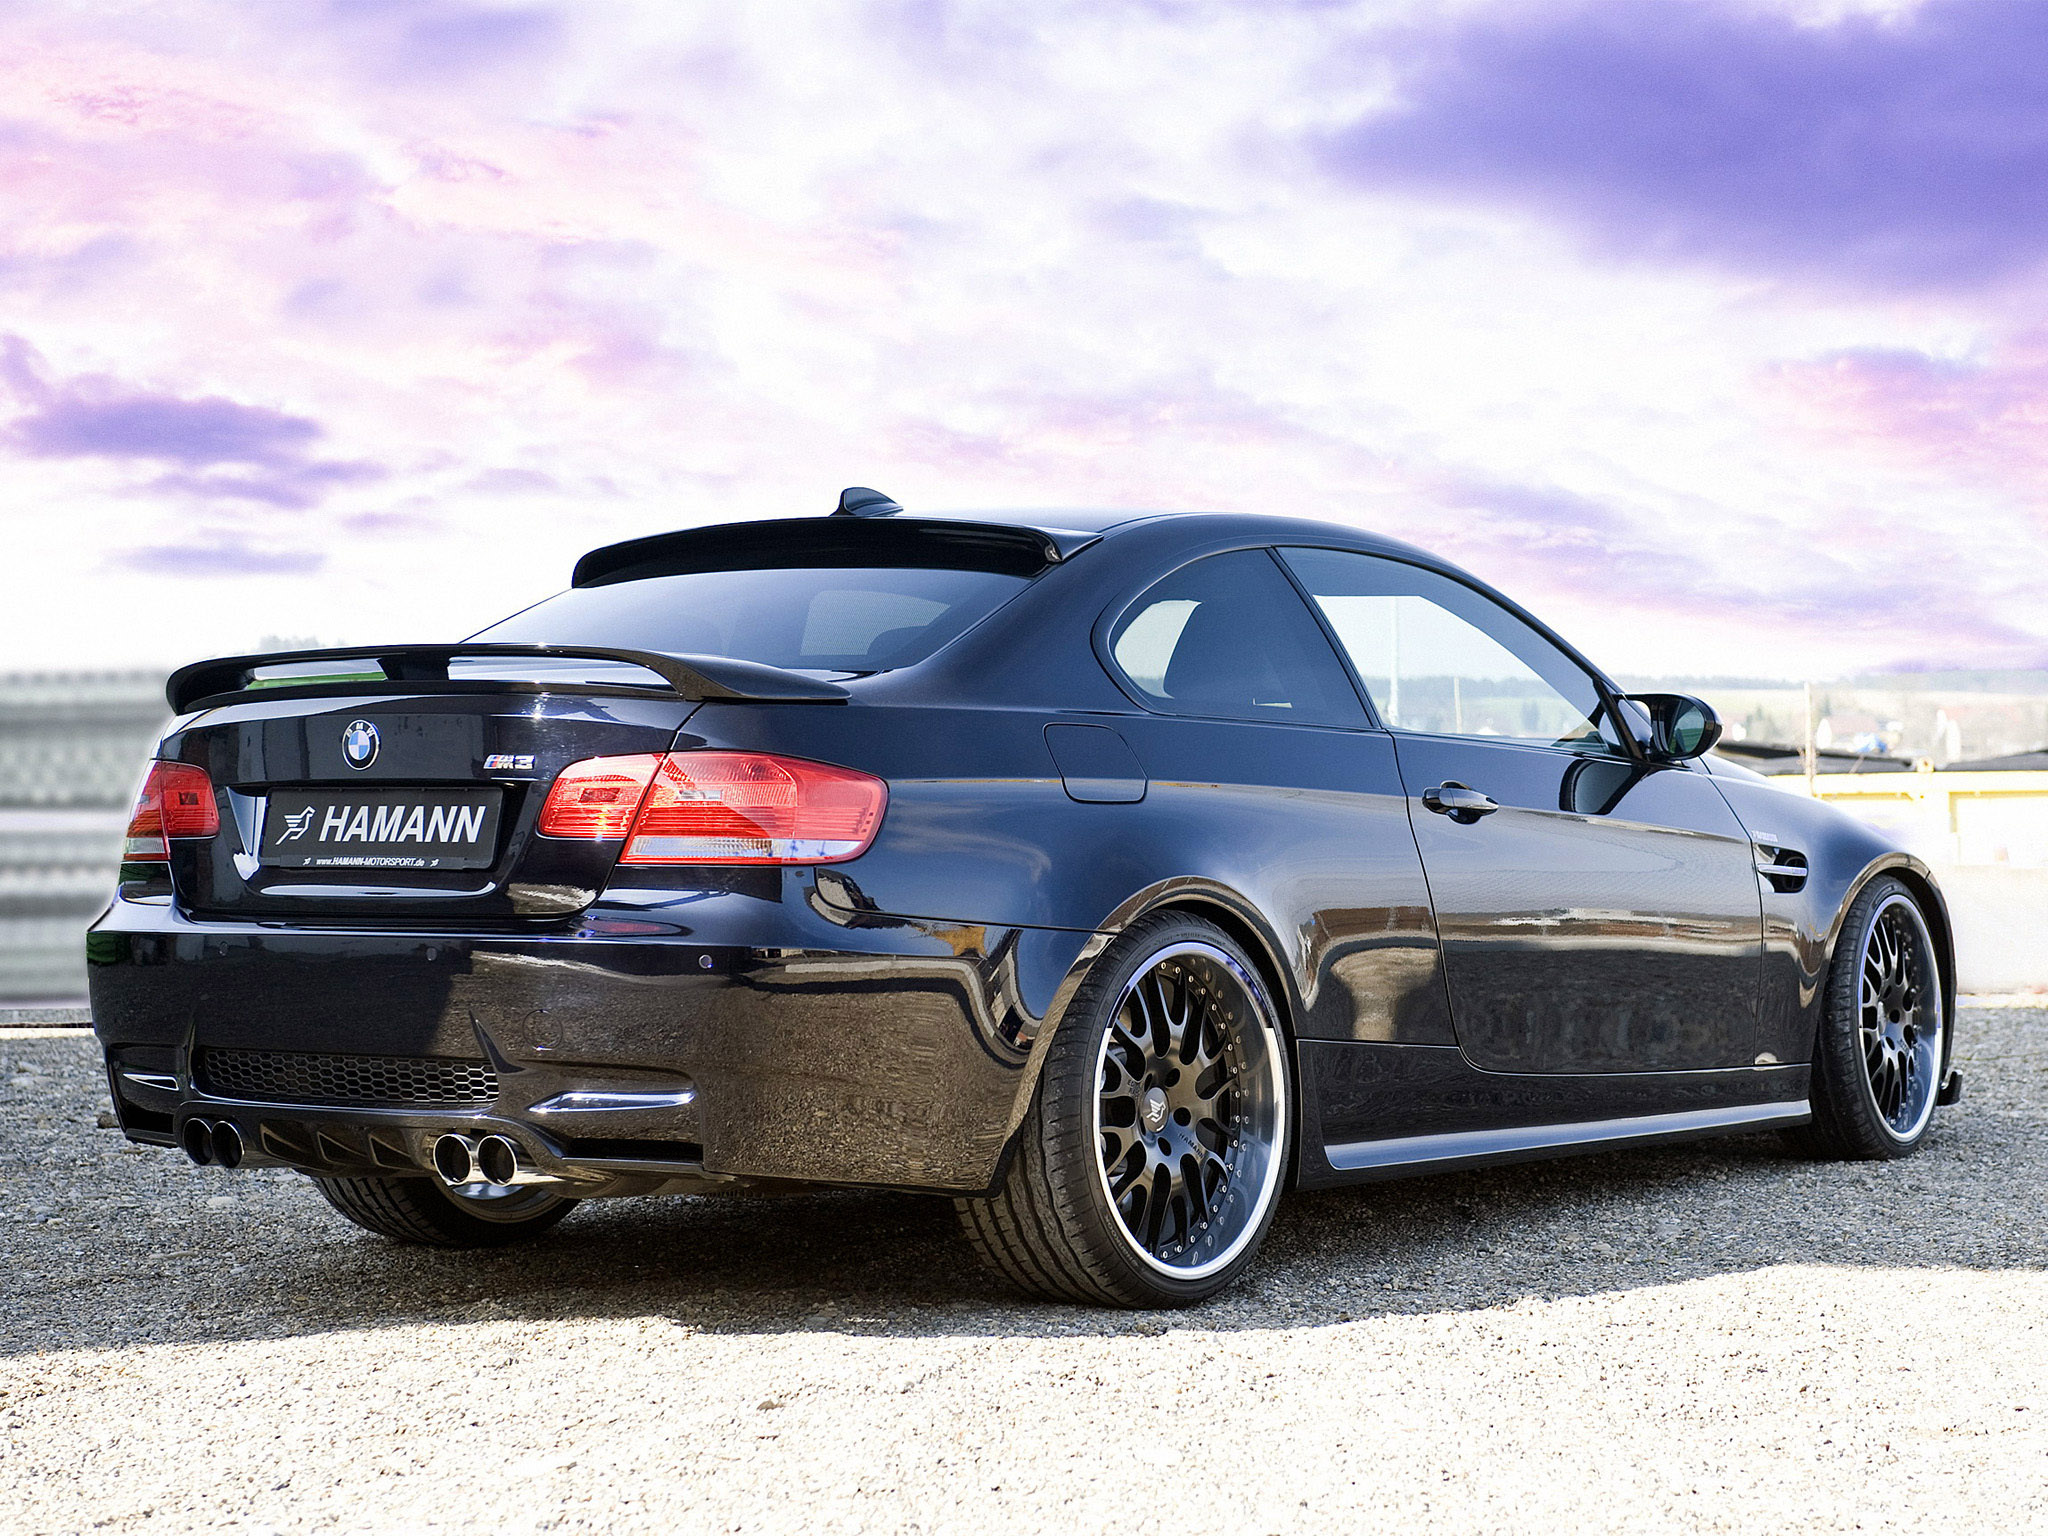 hamann bmw m3 coupe e92 2008 hamann bmw m3 coupe e92 2008 photo 04. Black Bedroom Furniture Sets. Home Design Ideas